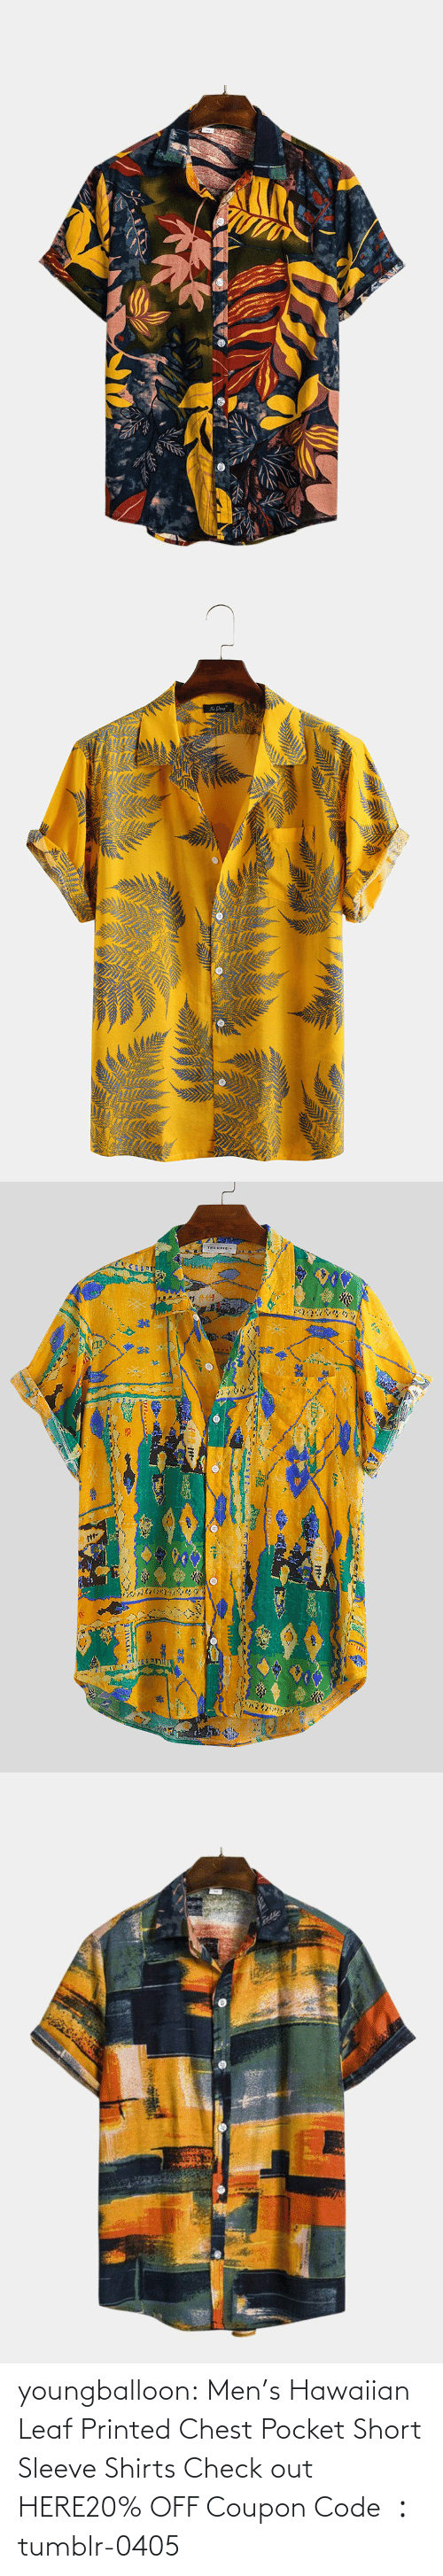 check: youngballoon:  Men's Hawaiian Leaf Printed Chest Pocket Short Sleeve Shirts Check out HERE20% OFF Coupon Code : tumblr-0405